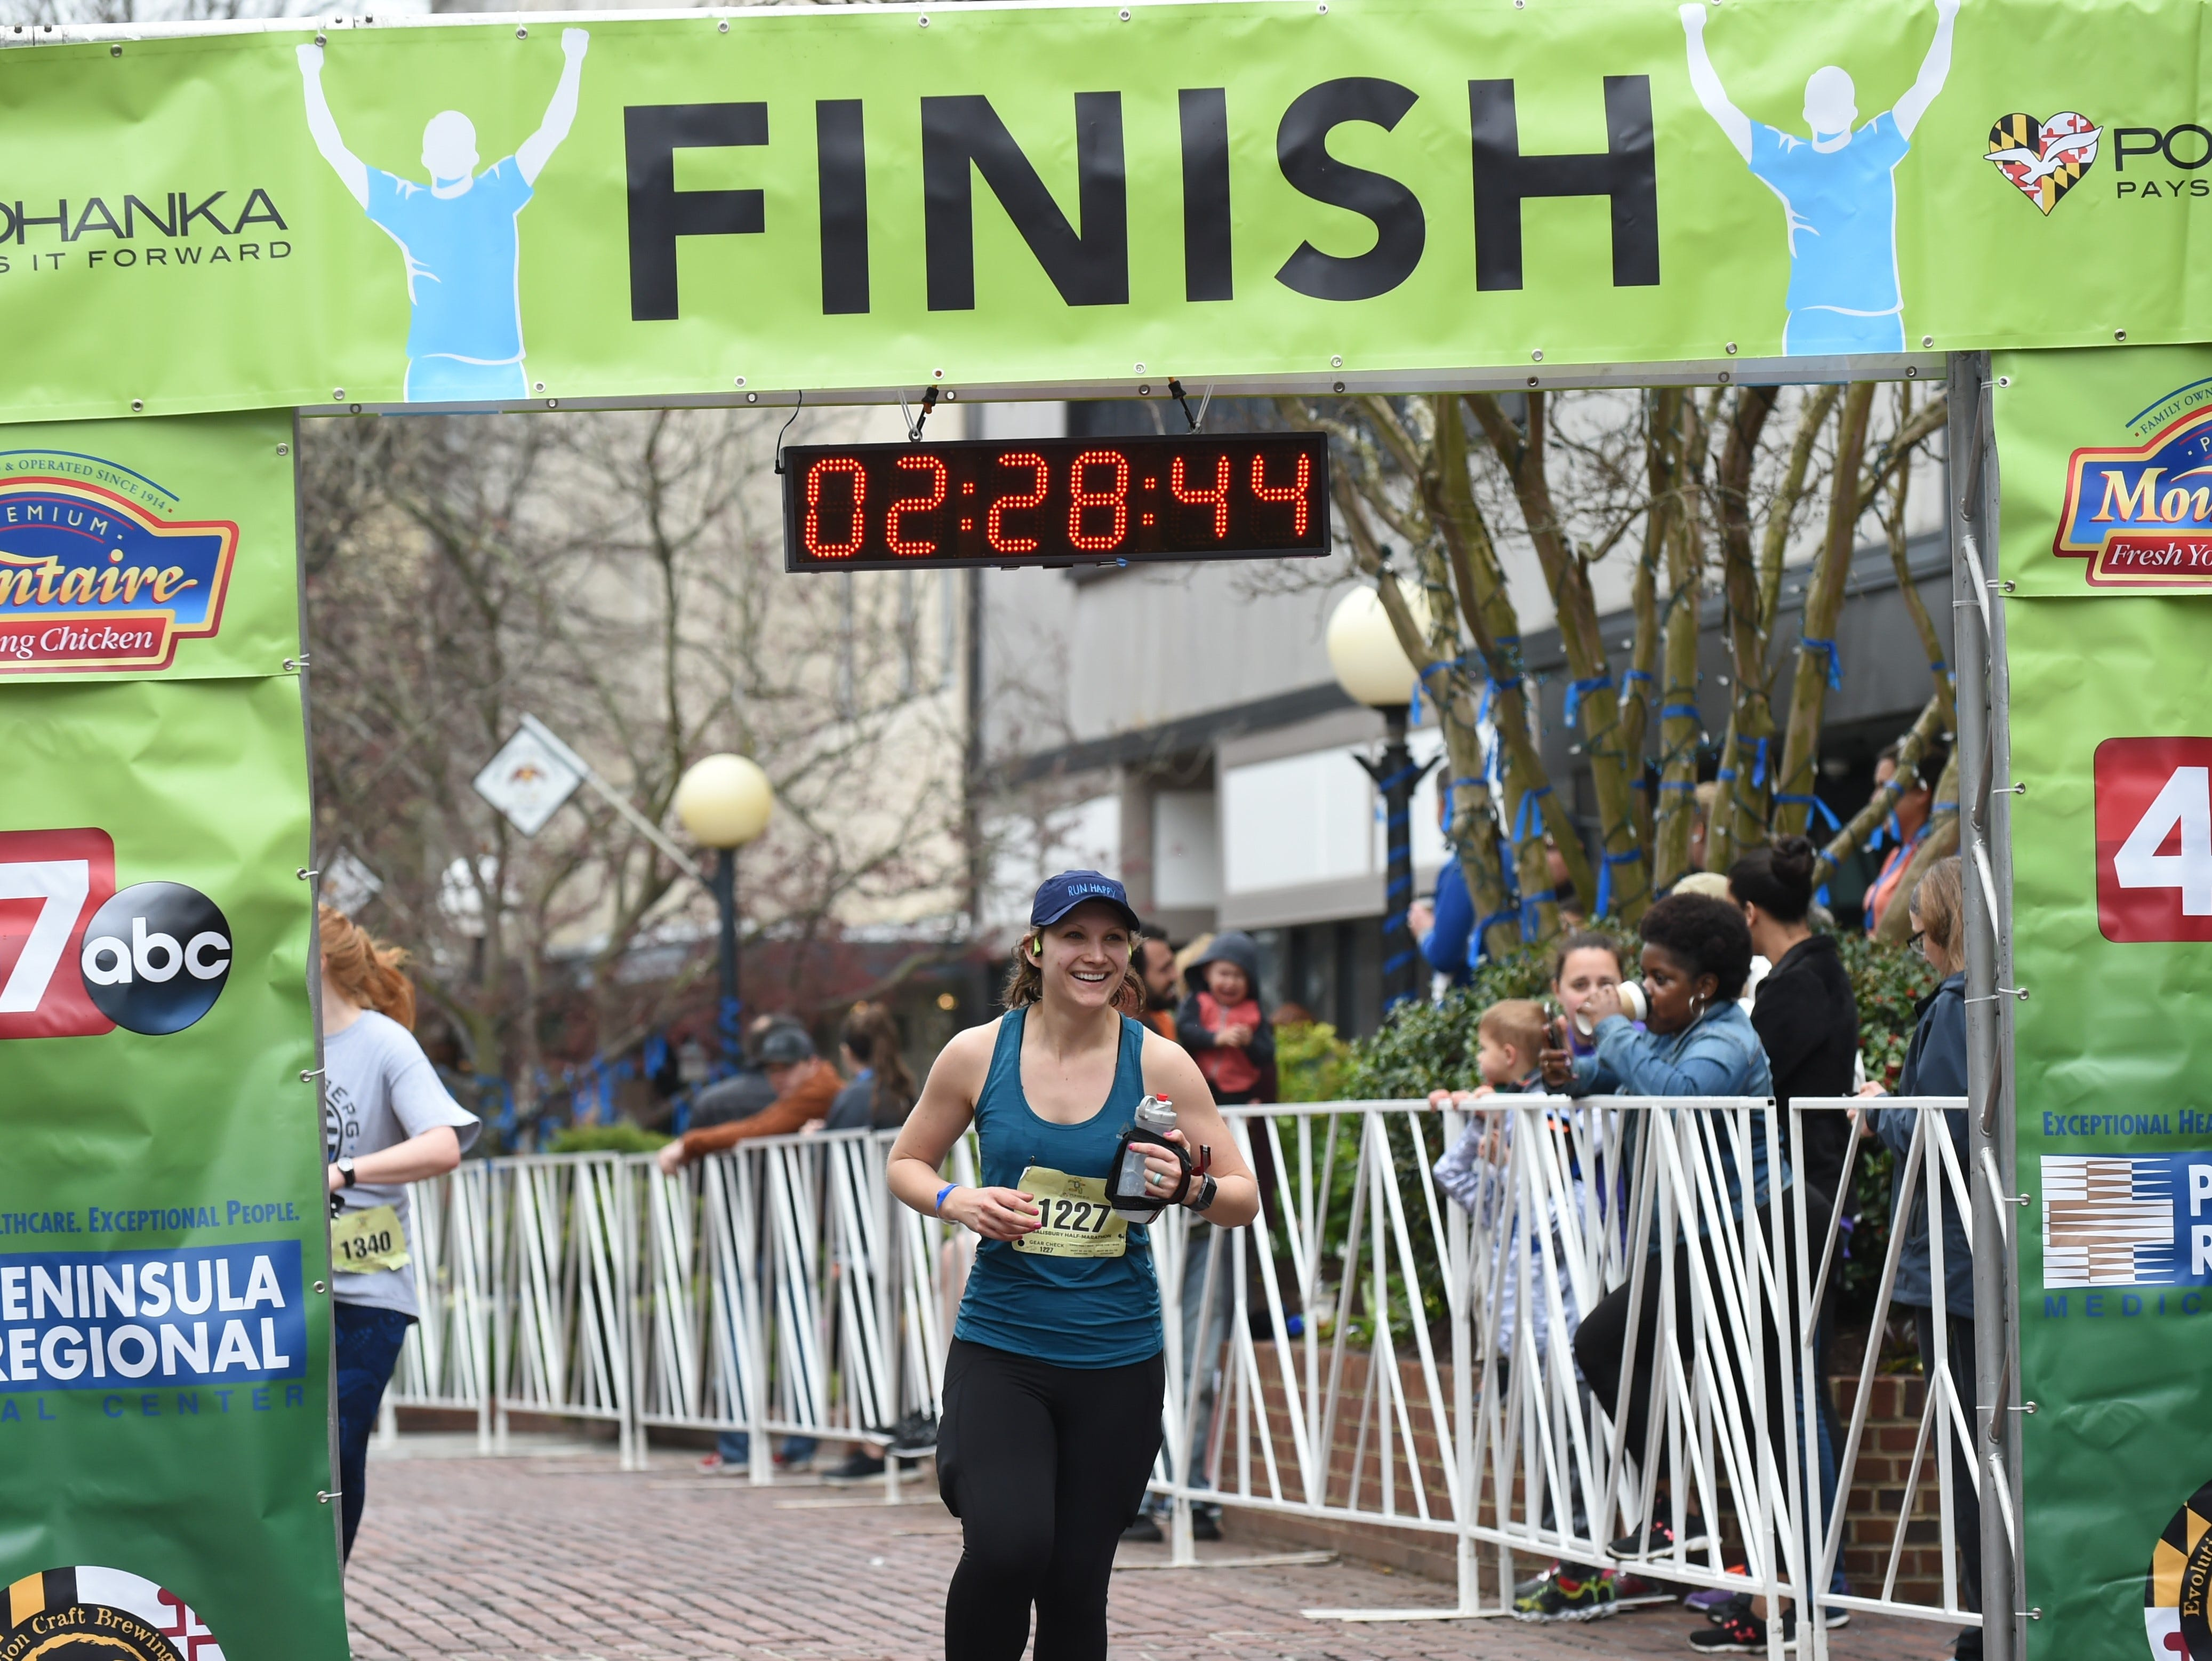 Stephanie Rush crosses the finish line after running in the 2nd Salisbury Marathon/ Half Marathon/ 5k on Saturday, April 6, 2019.